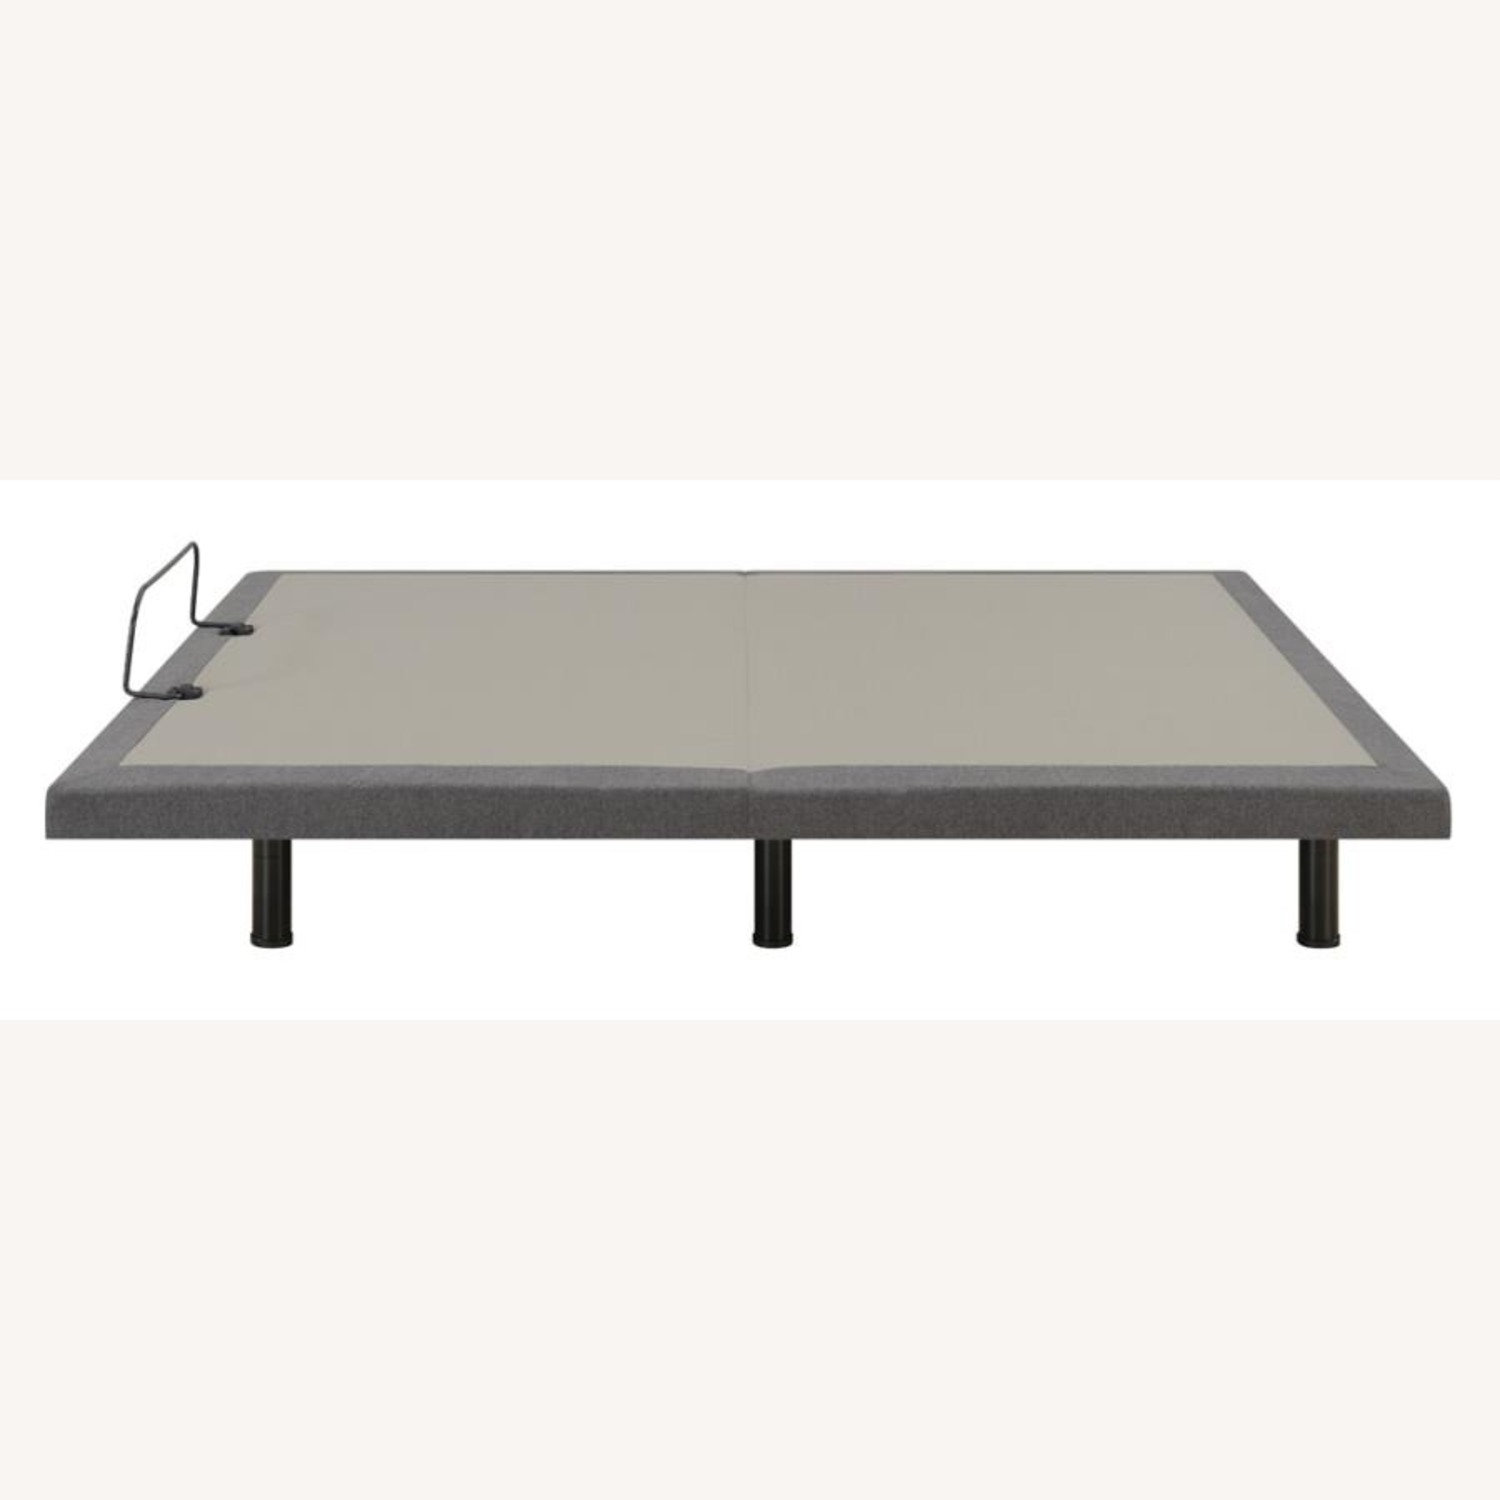 Queen Adjustable Bed Base In Grey Fabric Finish - image-5